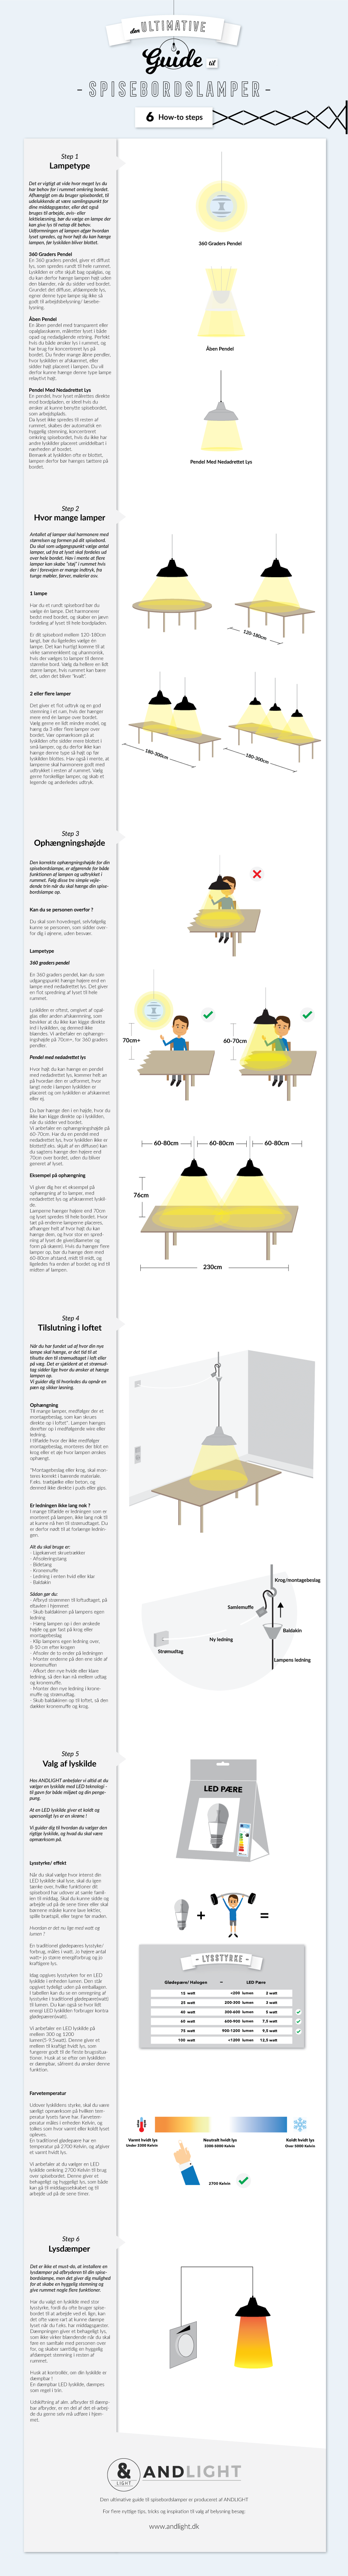 Picture of: Ny Lampe Til Over Spisebordet Laes Vores Store Diy Guide